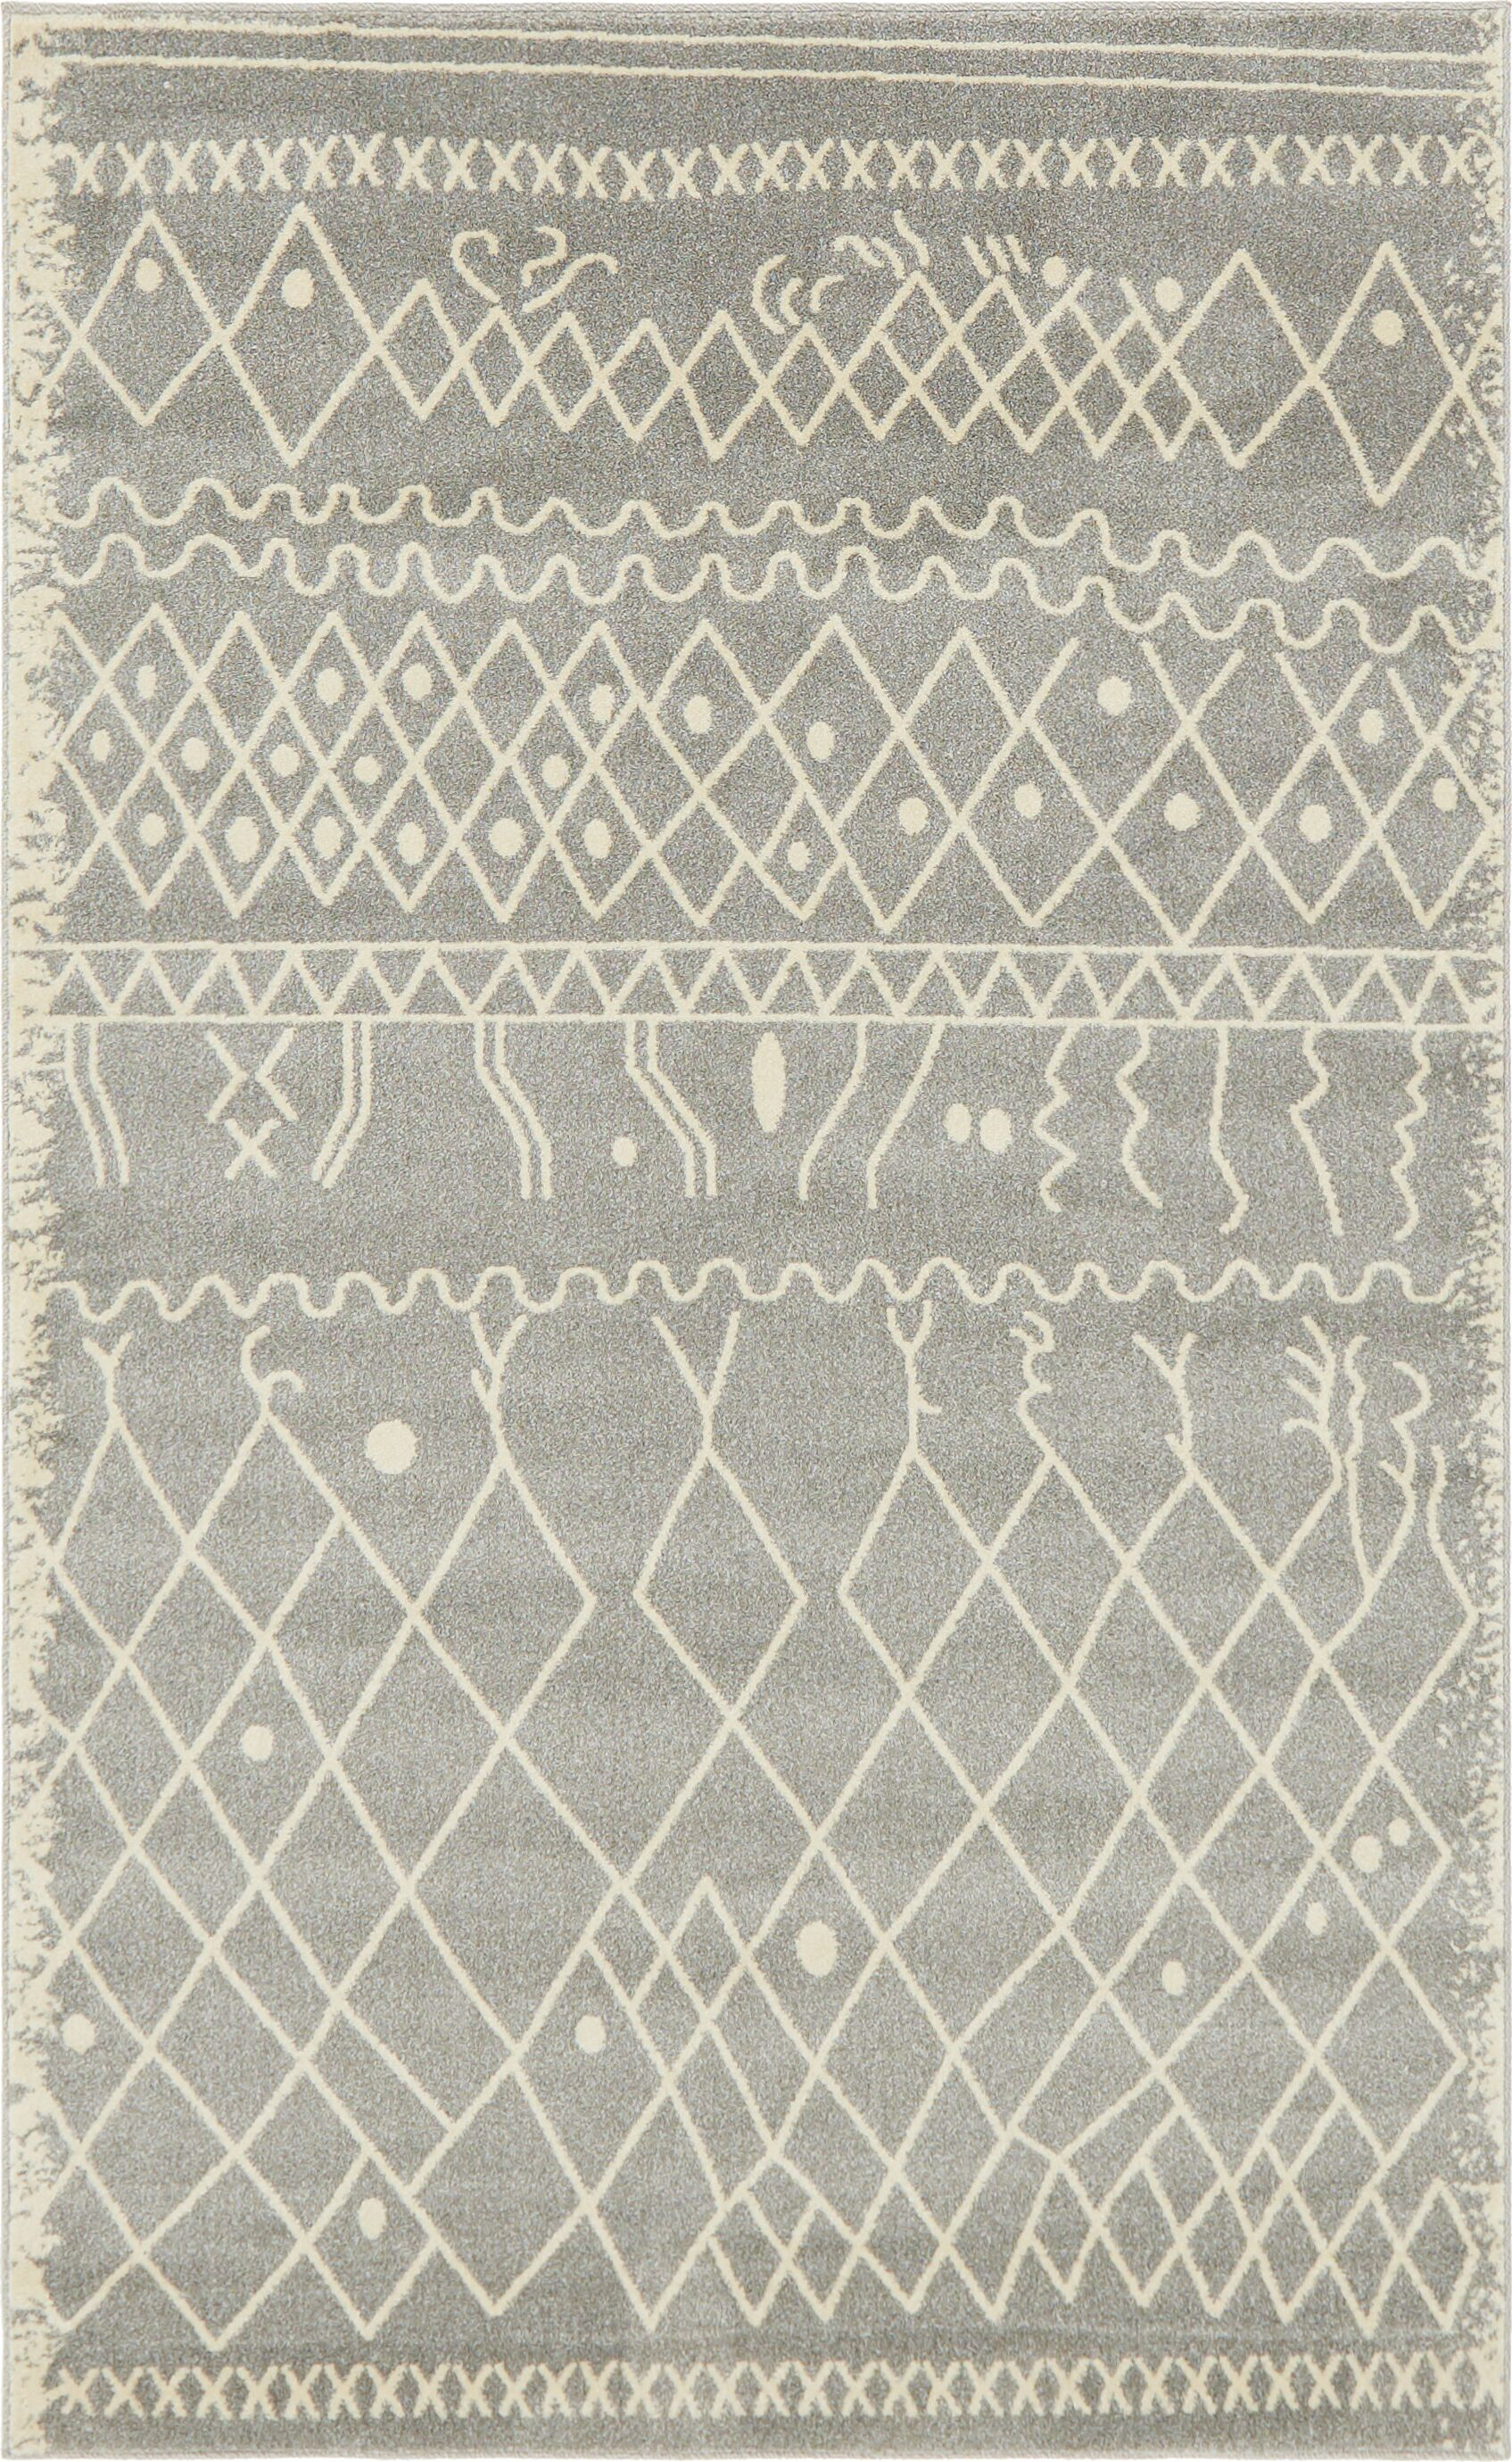 Foxhill Gray Area Rug Rug Size: Rectangle 5' x 8'